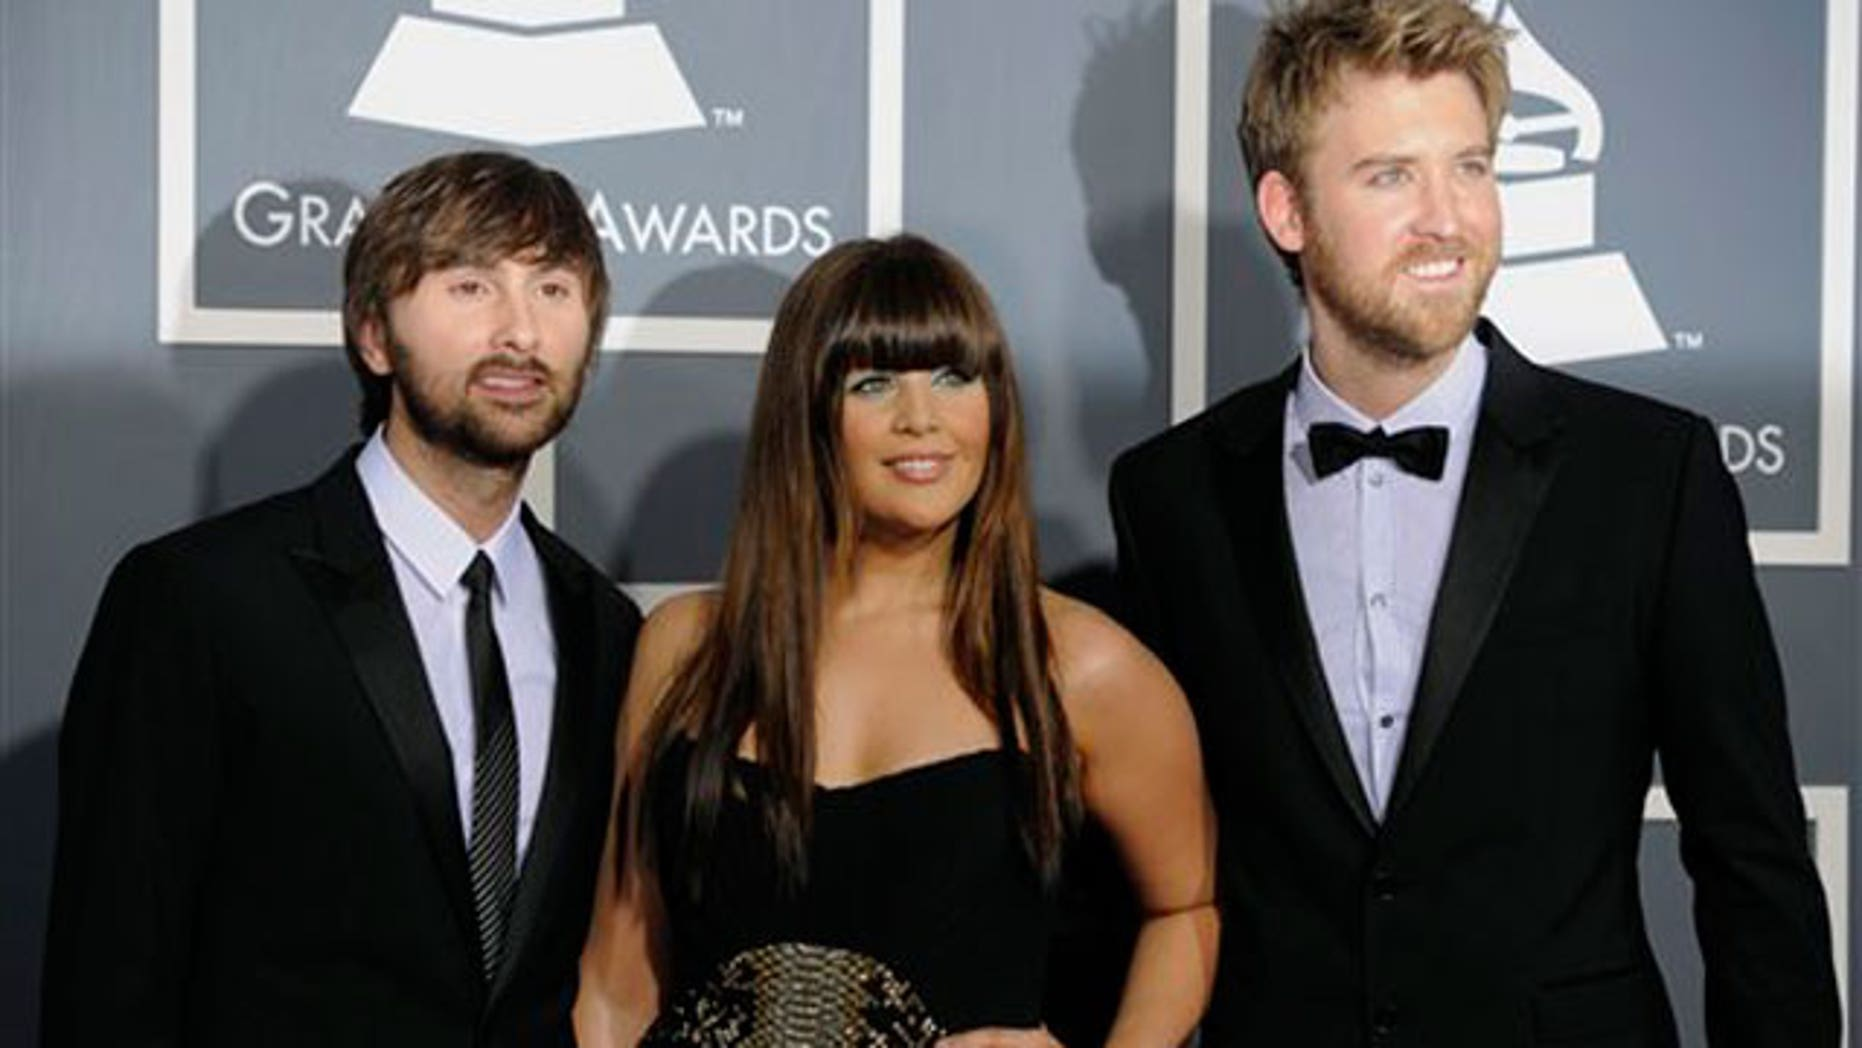 Lady Antebellum at the Grammy Awards.